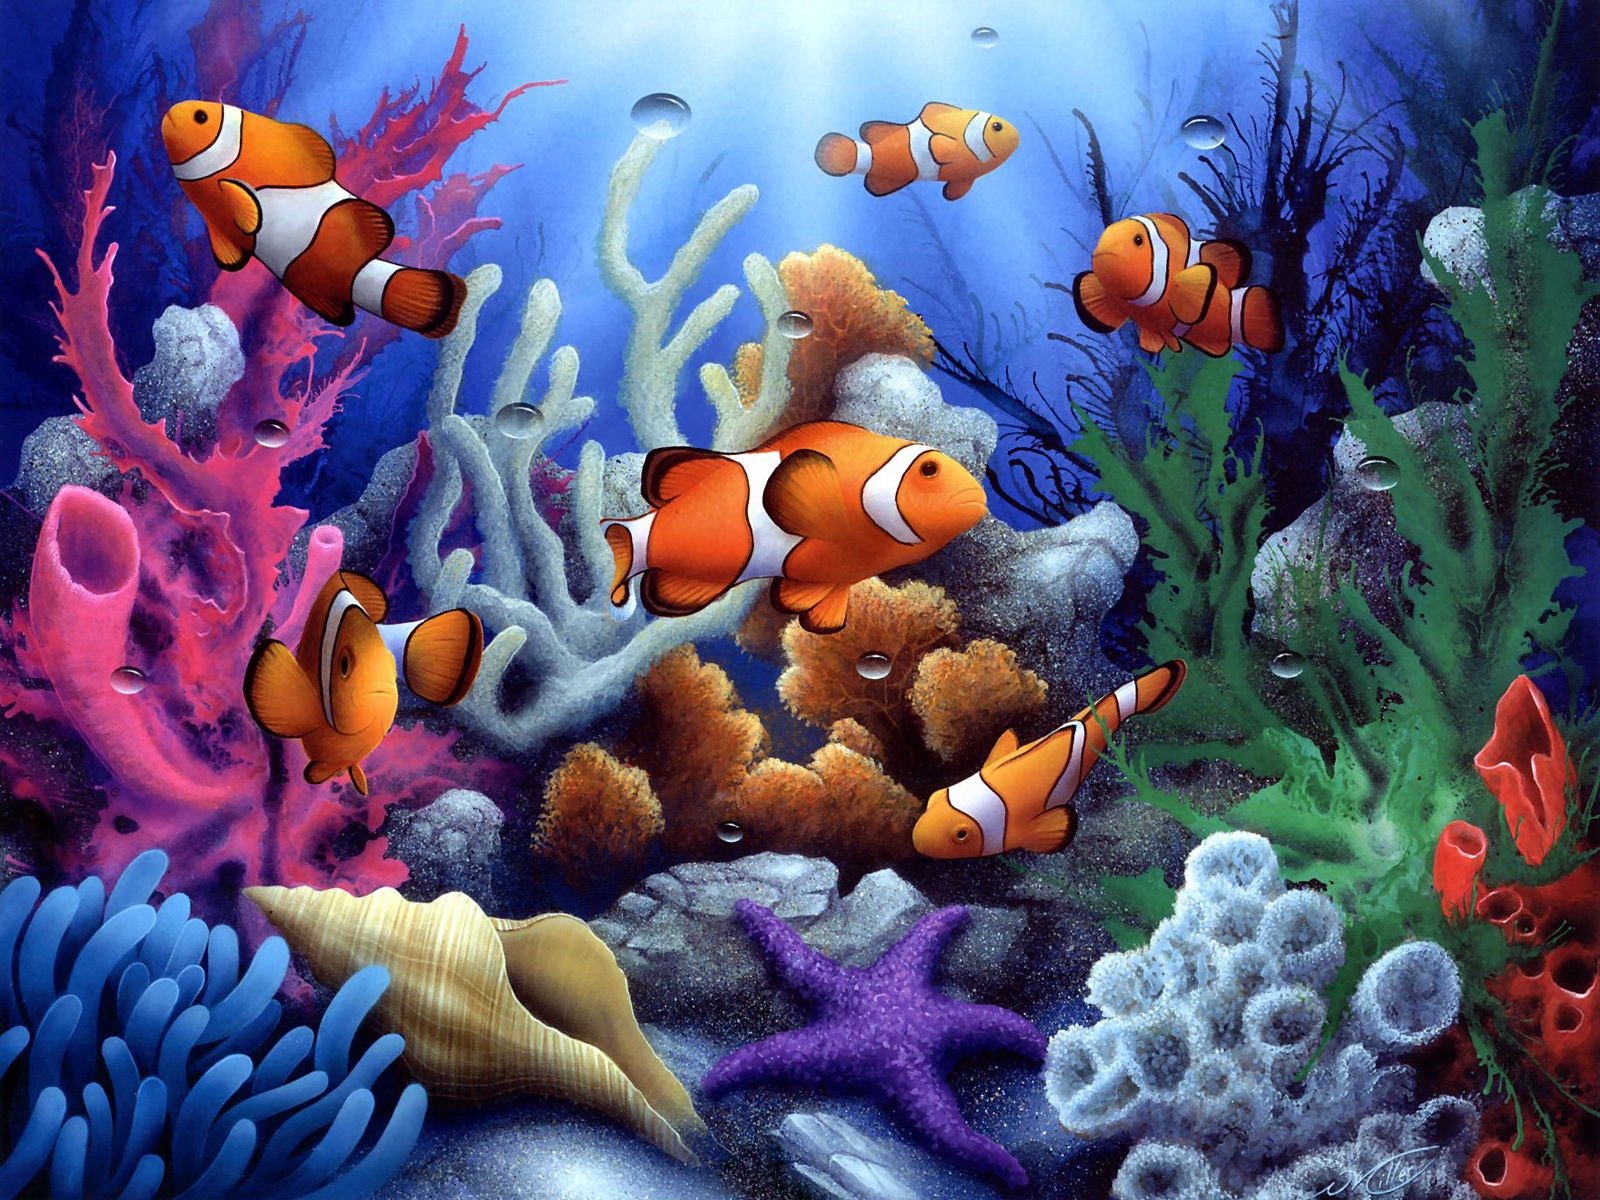 Wallpaper Colorful Underwater Coral And Fish 1600x1200 Hd Picture